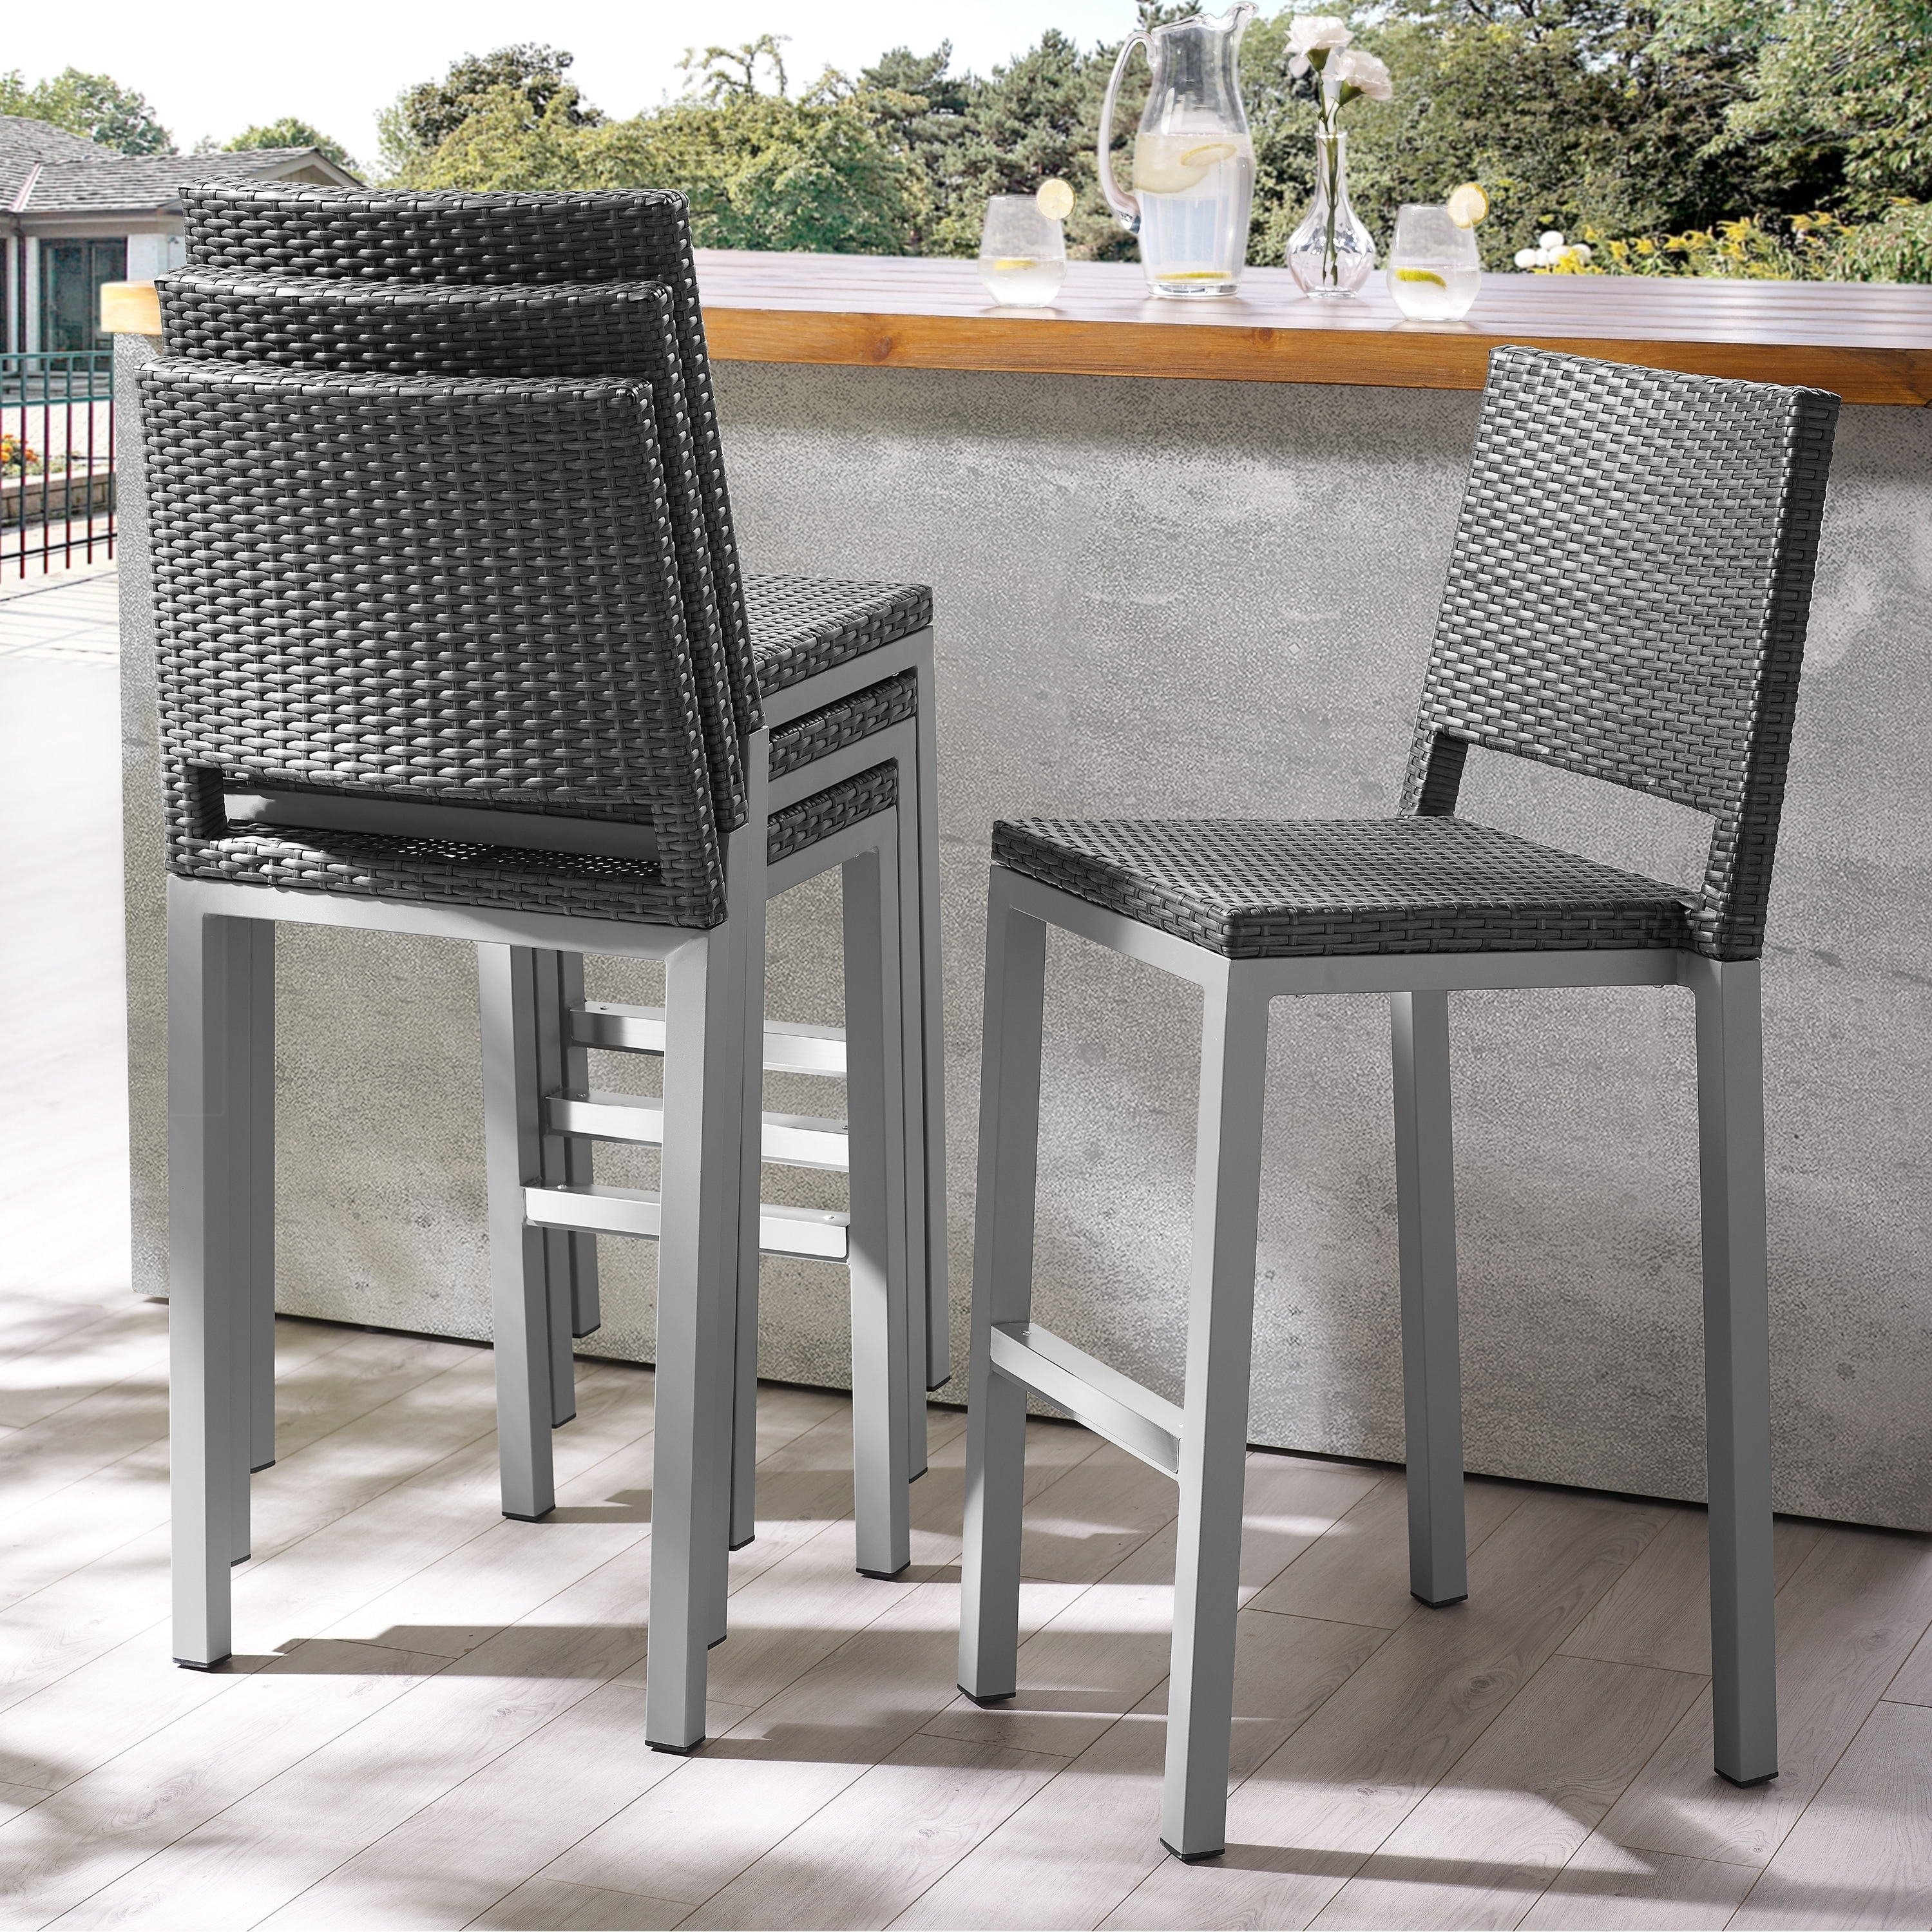 Havenside Home Plymouth Patio Aluminum 30 Inch Outdoor Wicker Bar Stools Set Of 4